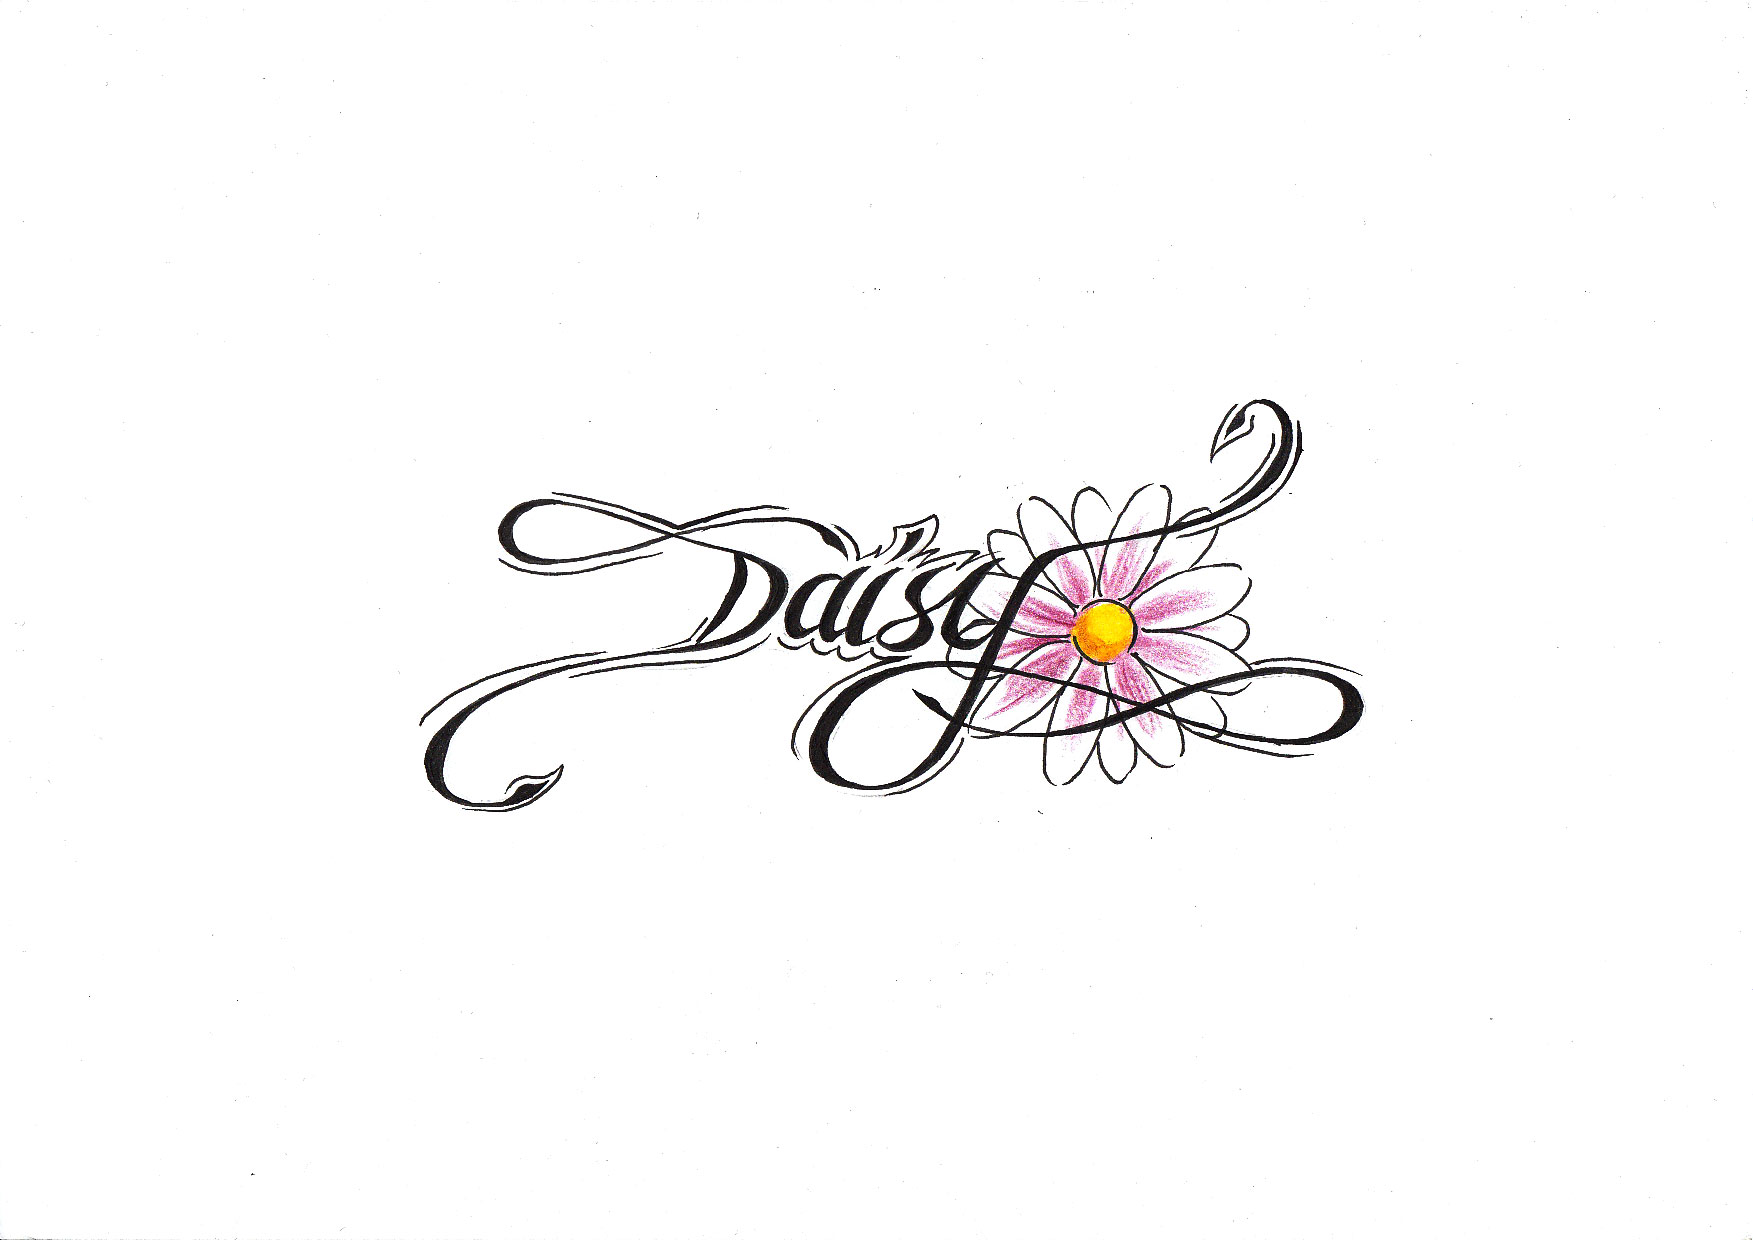 Daisy Flower Tattoo Sample